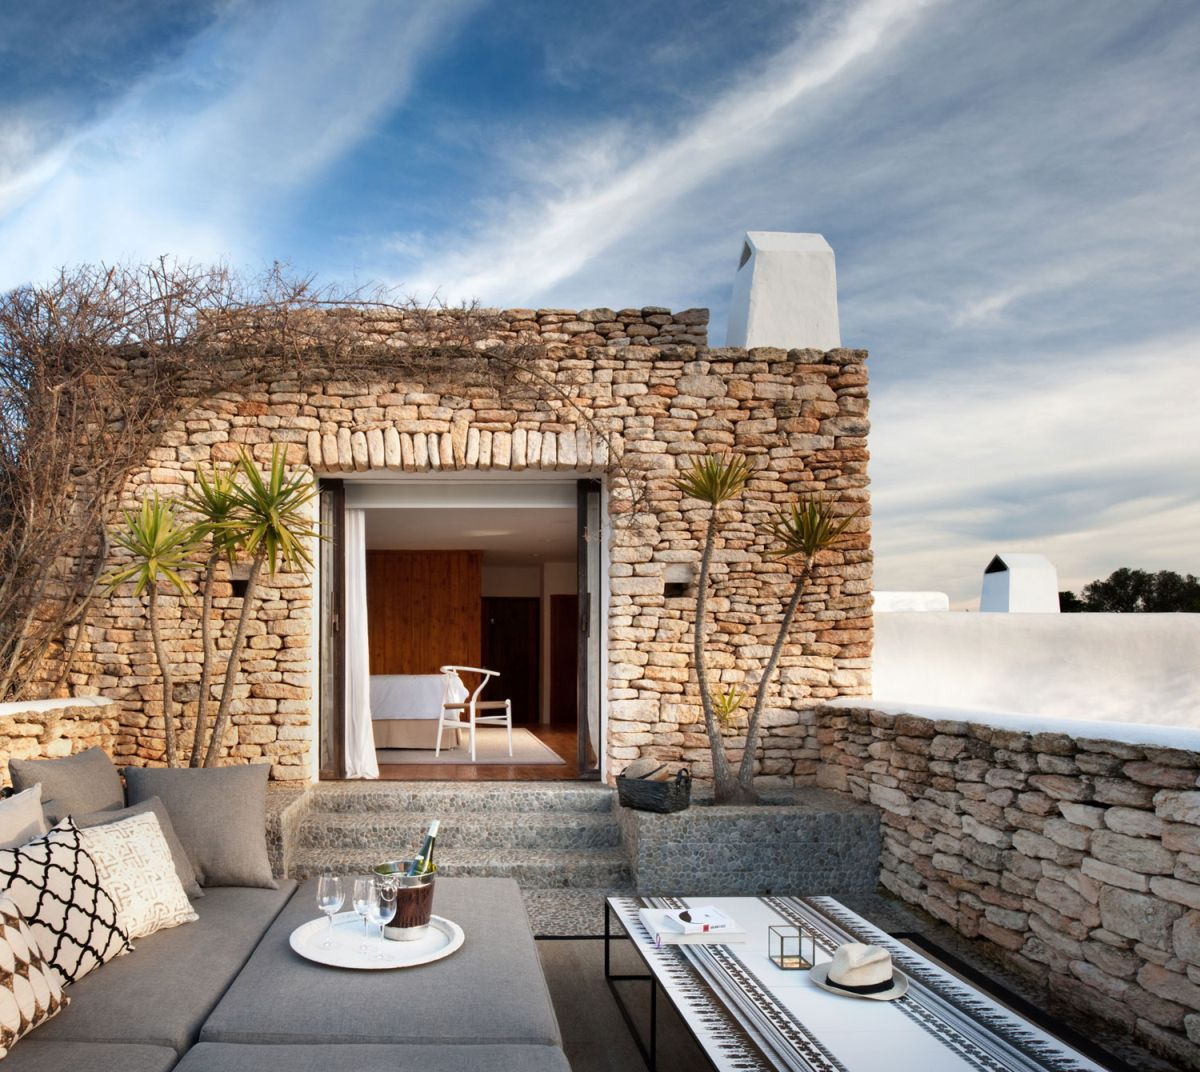 Modern Ibiza home by TG Studio - outdoor terrace